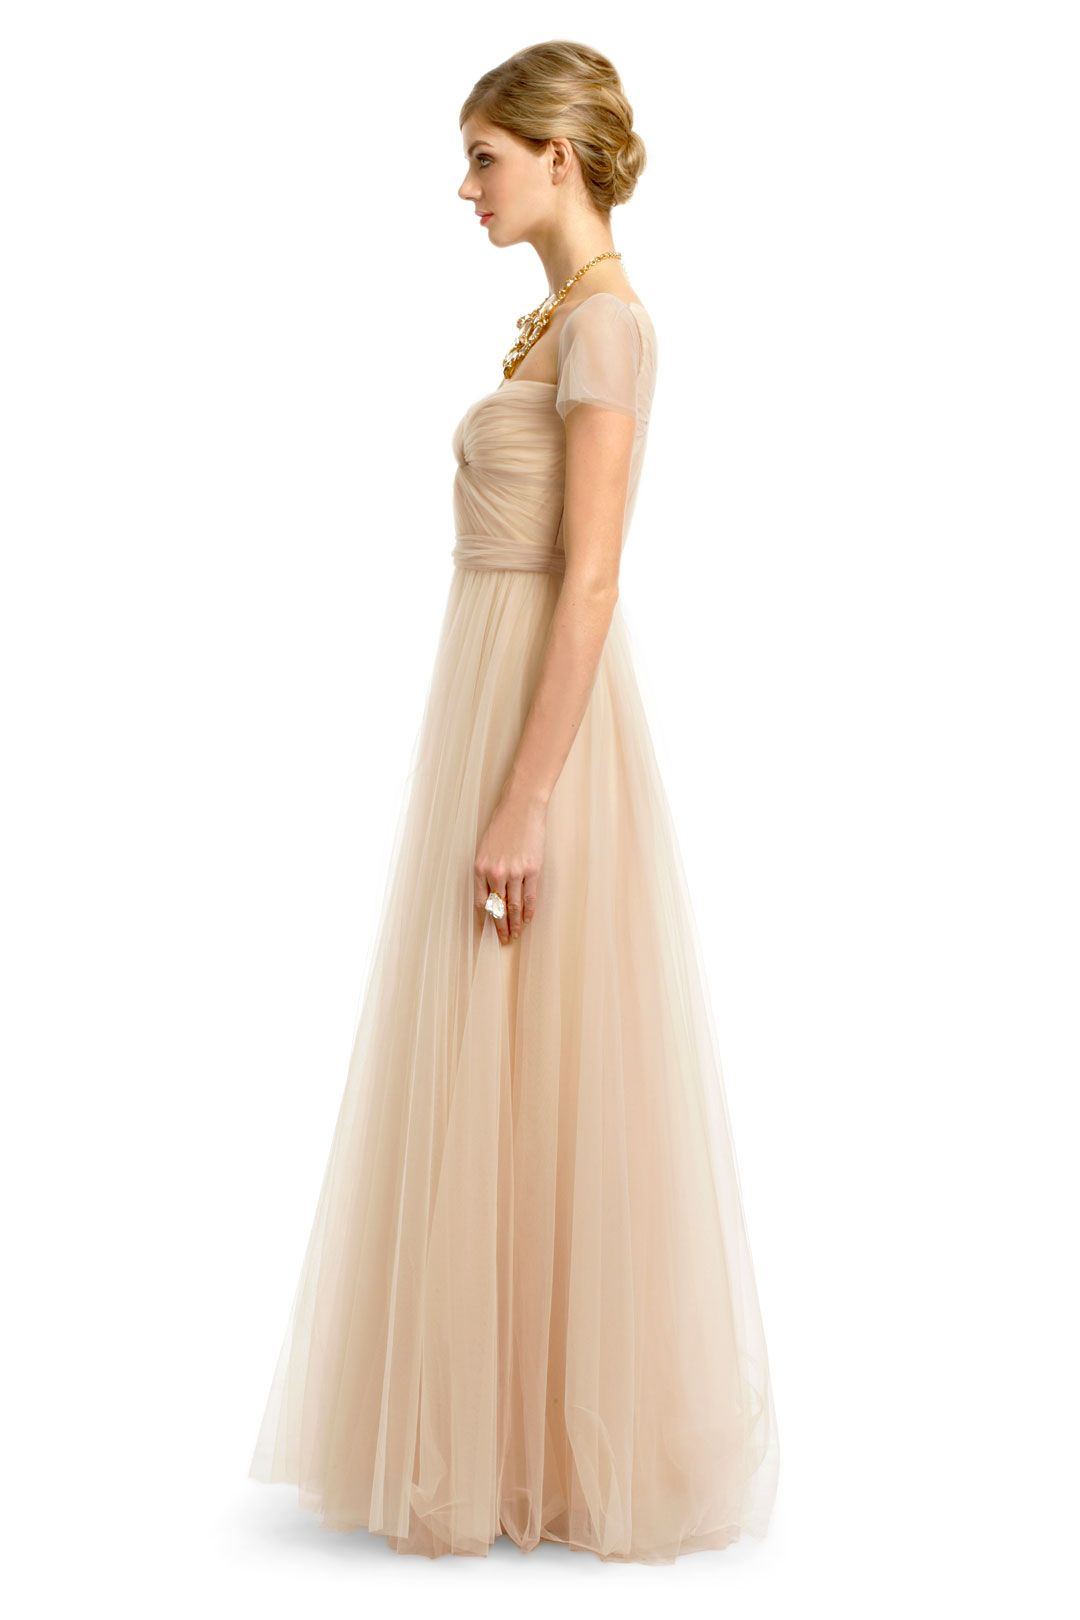 Reem Acra Florence Gown// | o u t f i t | Pinterest | Florence ...